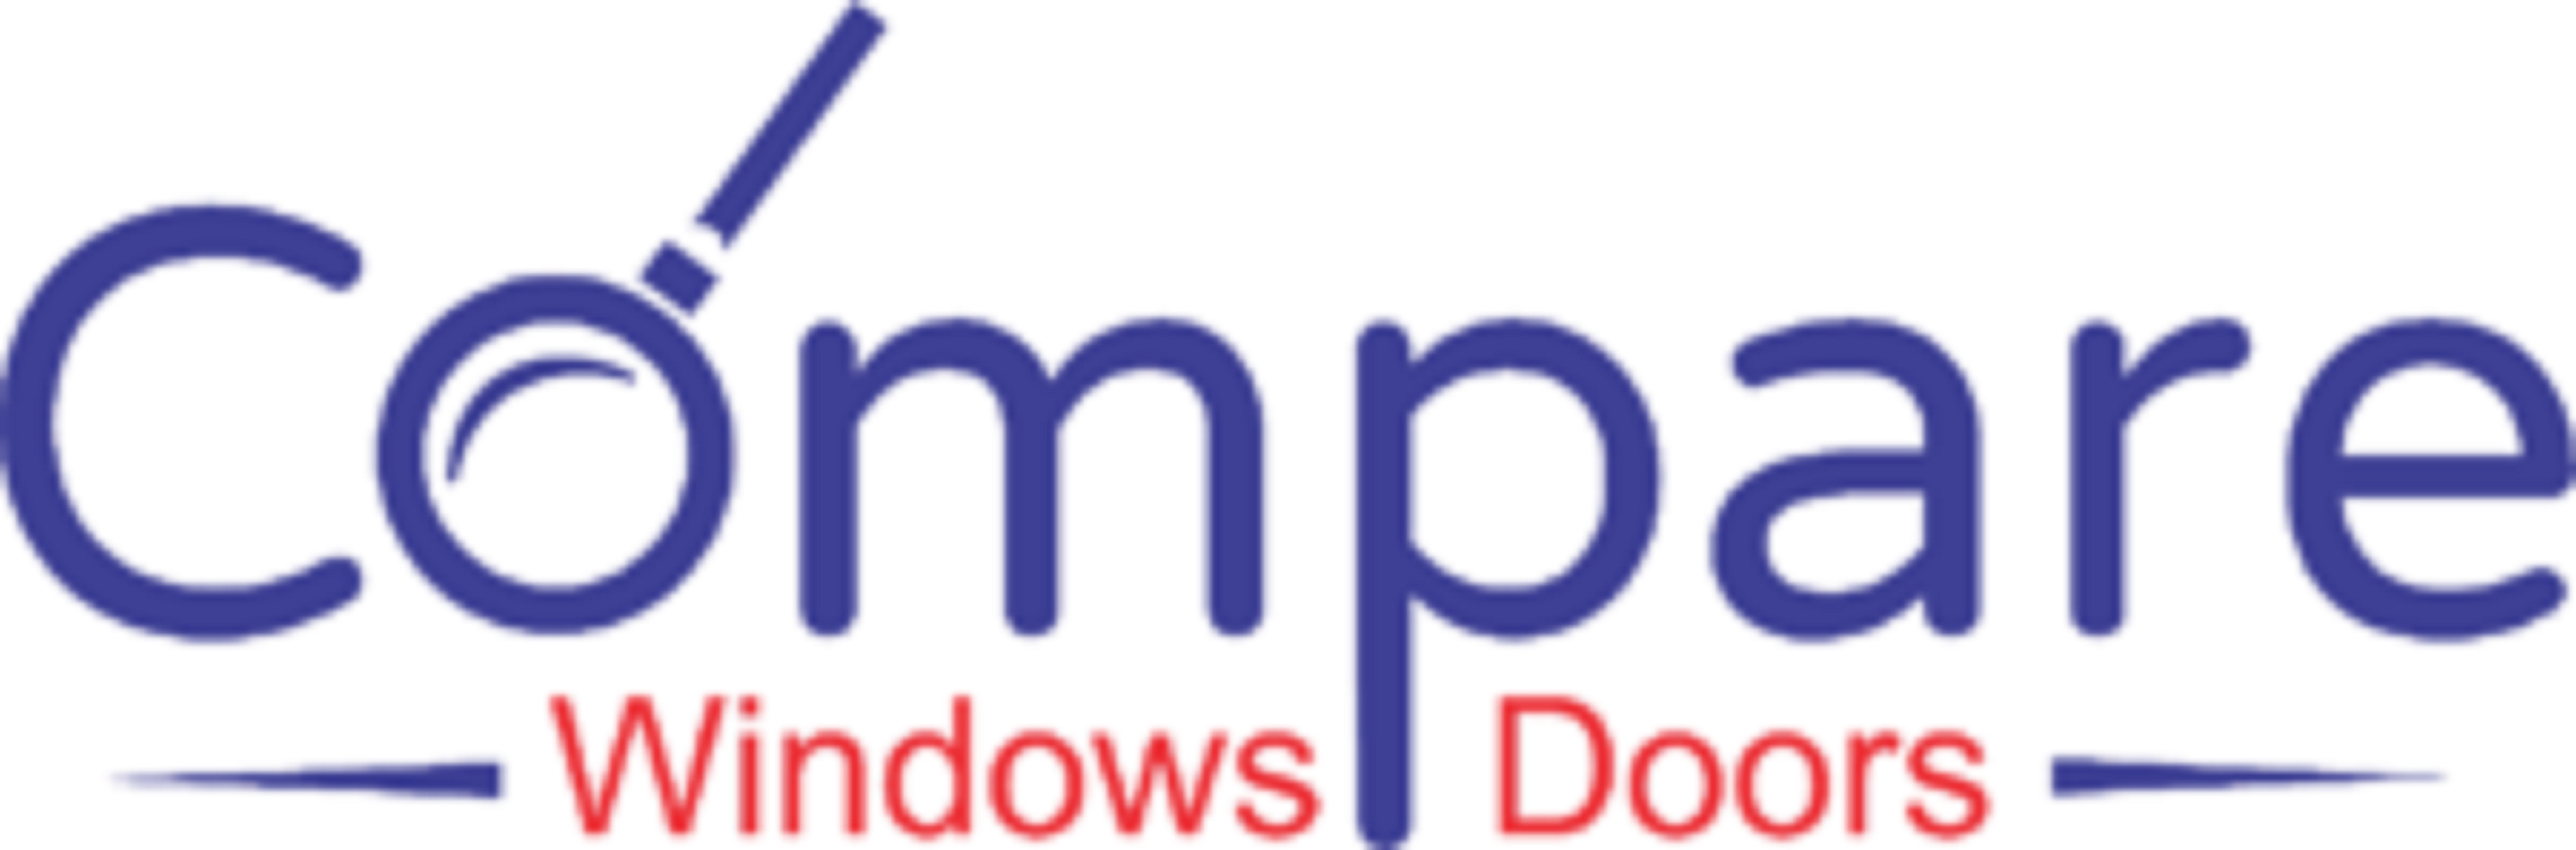 Compare Windows doors .com